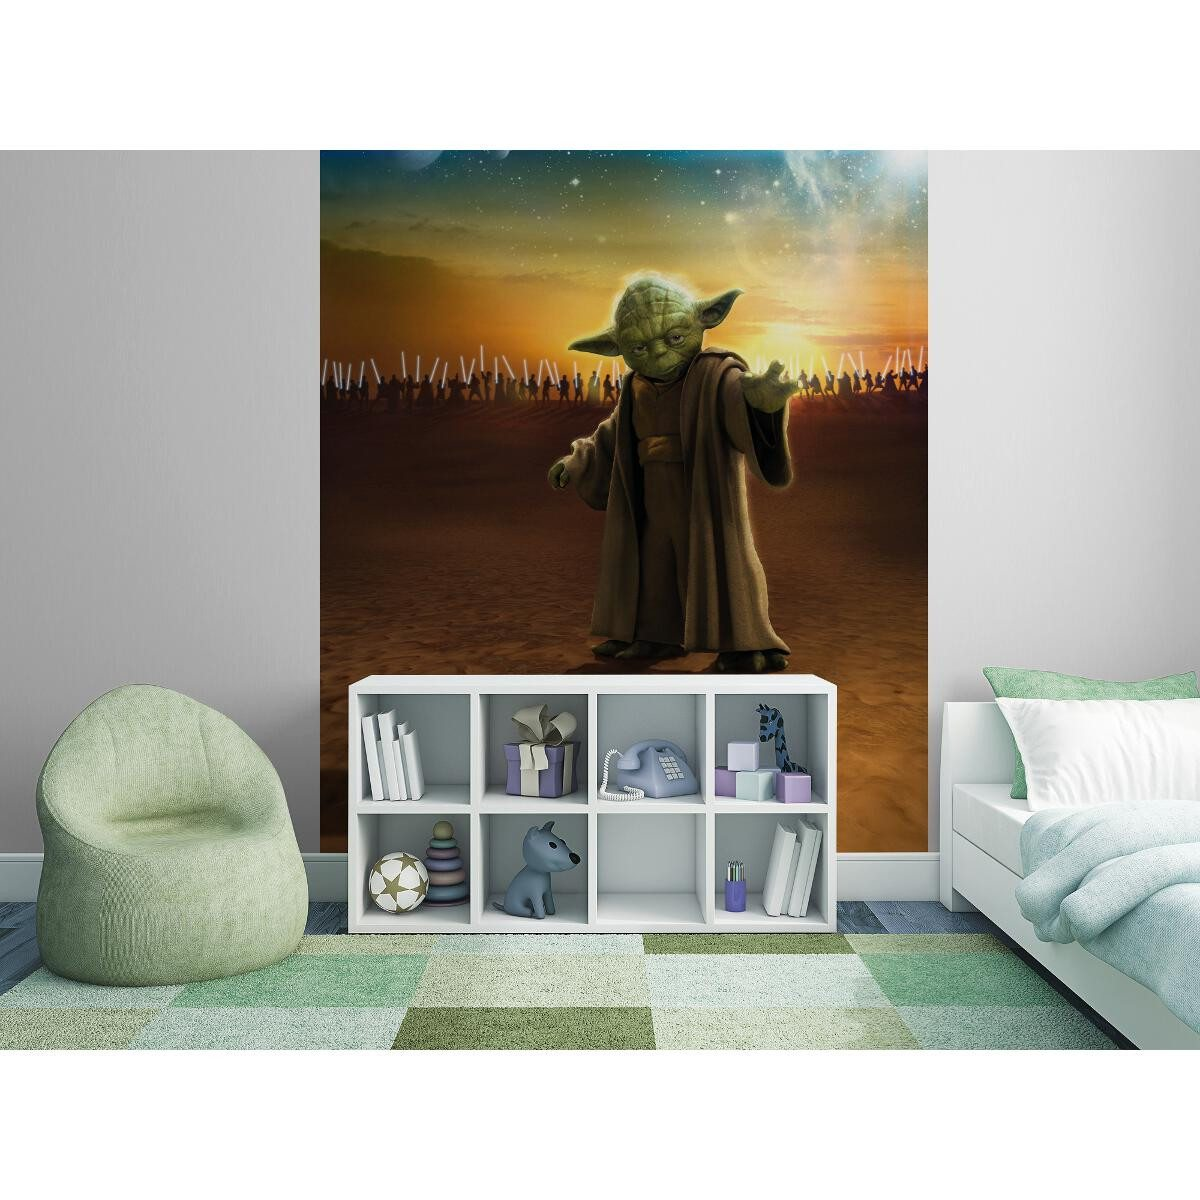 photomur papier peint star wars. Black Bedroom Furniture Sets. Home Design Ideas